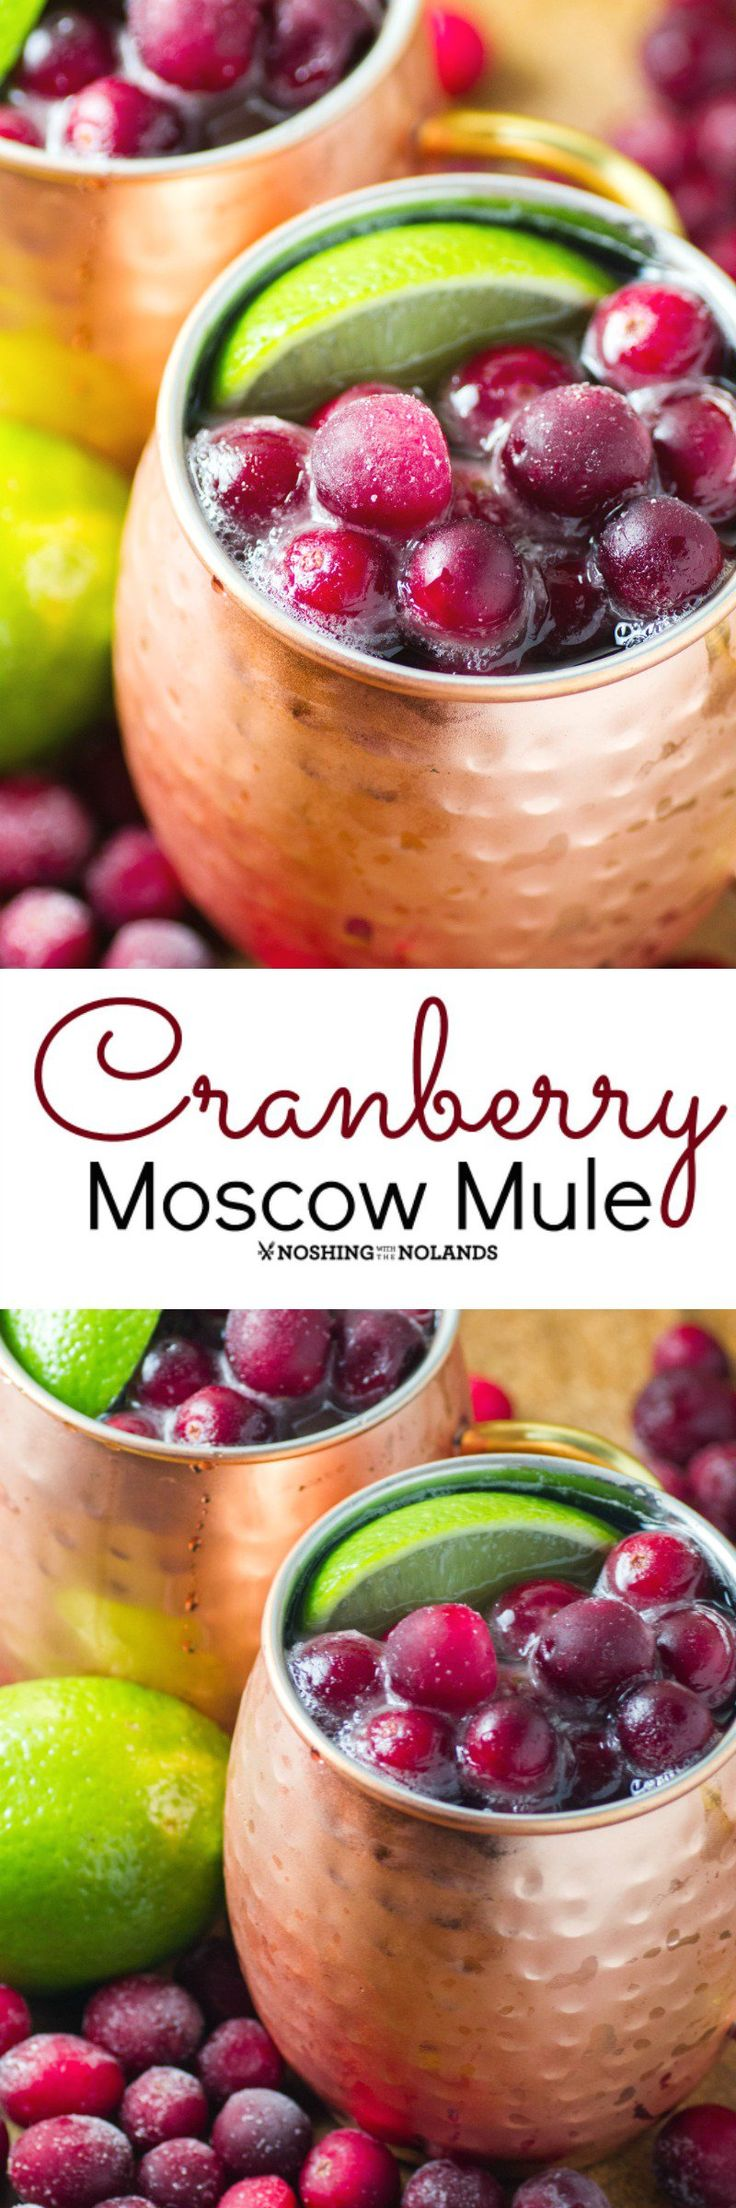 ..want your eyes to first be enchanted and then you taste buds aroused. This Cranberry Moscow Mule has it all and is perfect for the coming holiday season!!